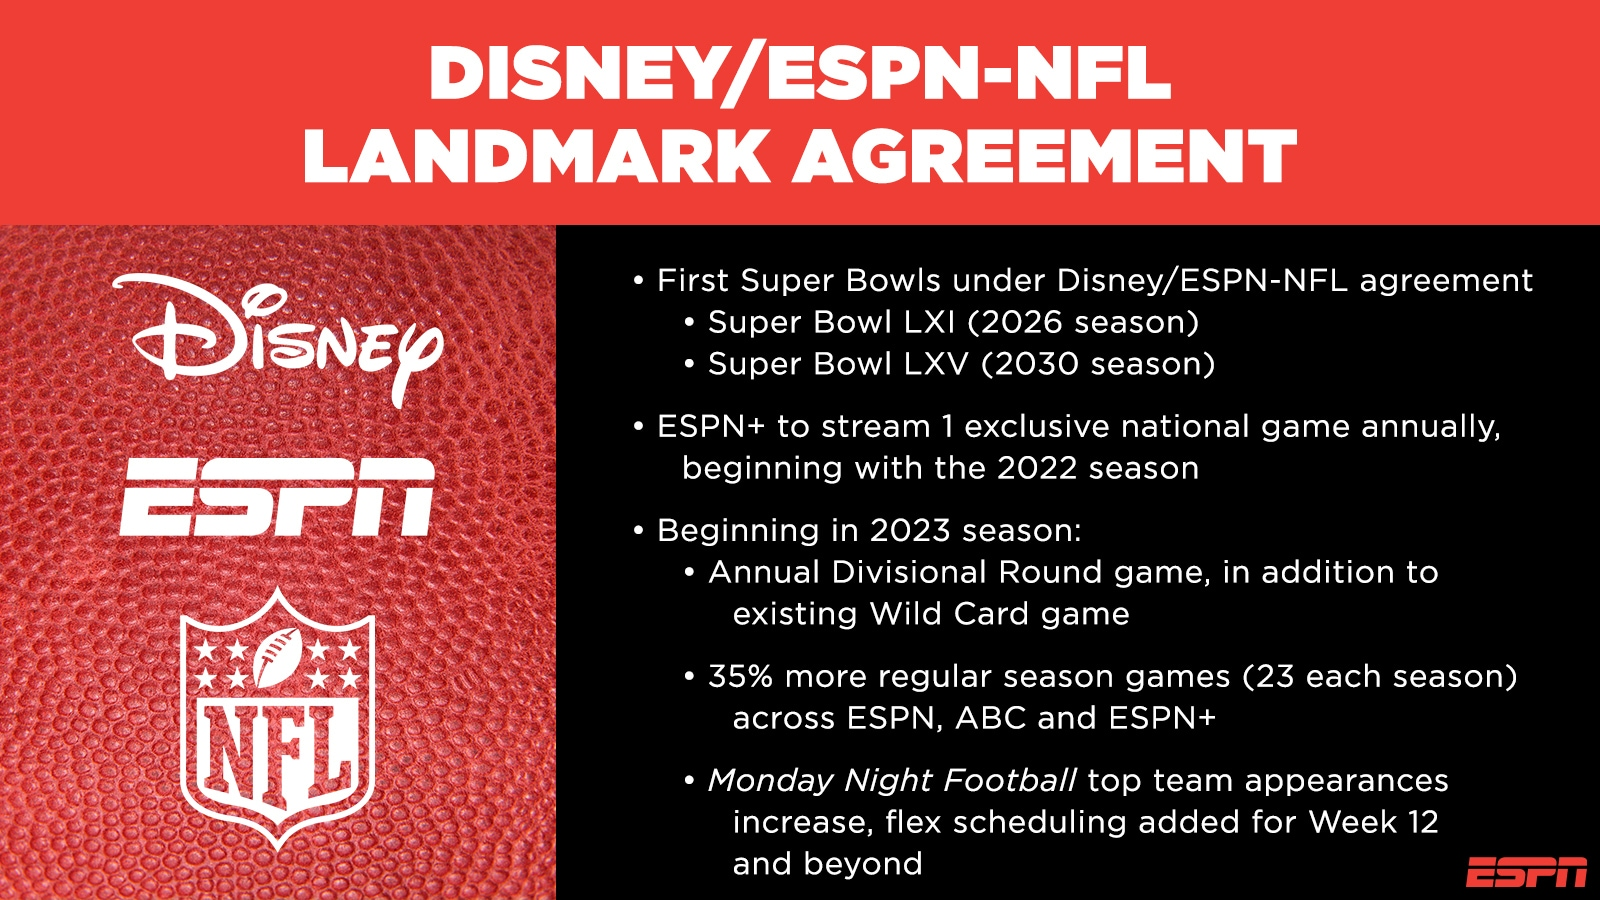 The Walt Disney Company, ESPN and National Football League Reach Landmark Long-Term Agreement